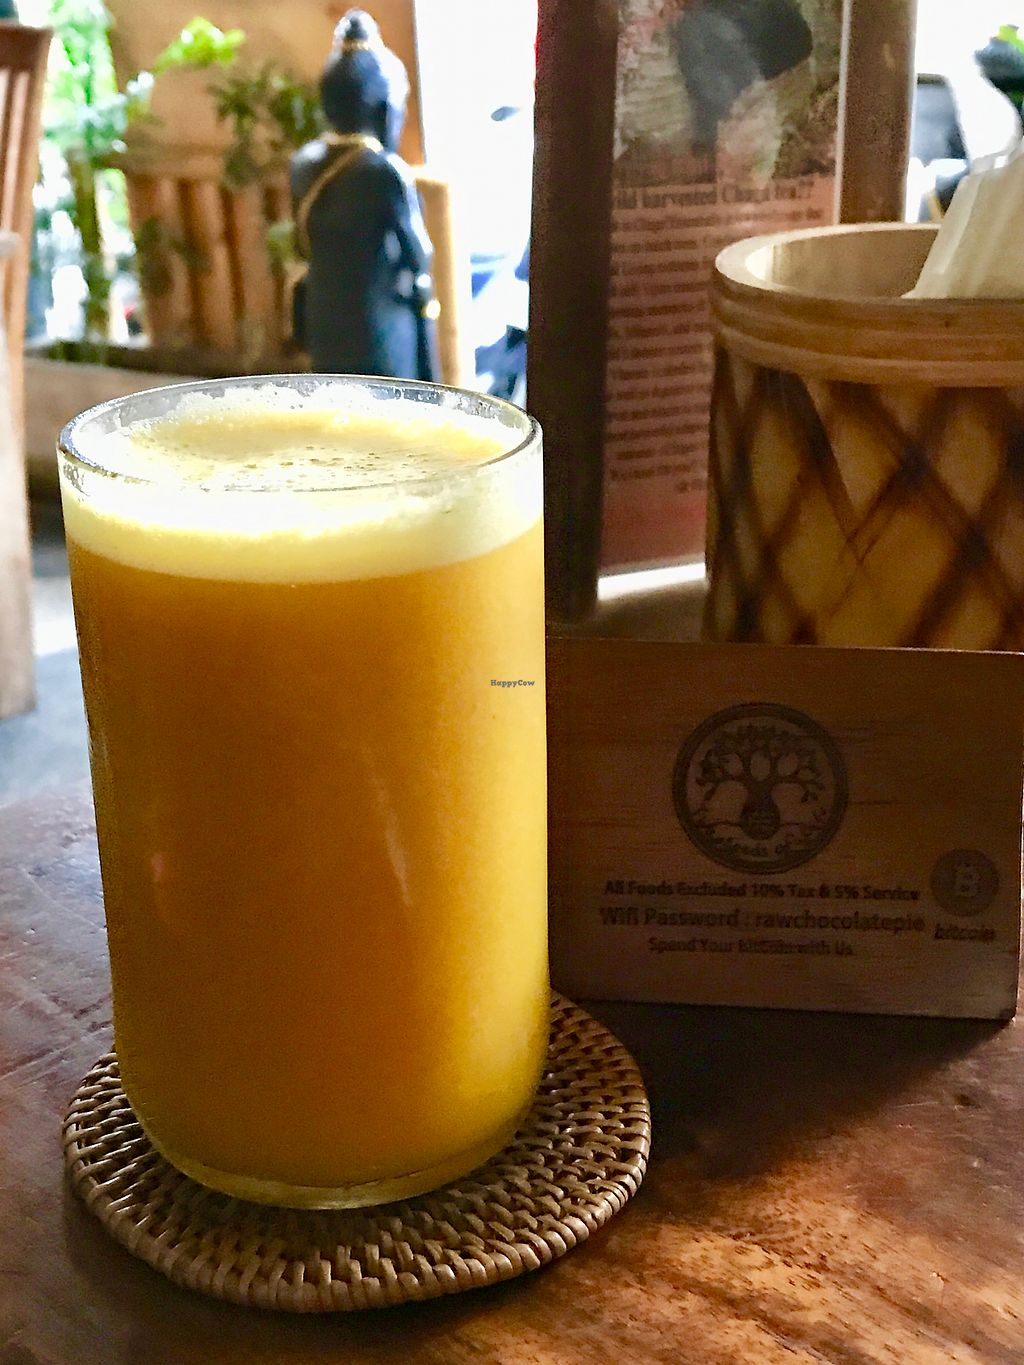 """Photo of The Seeds of Life  by <a href=""""/members/profile/Yogini106"""">Yogini106</a> <br/>Fresh juice ( orange, pineapple, carrot, ginger, tumeric )  <br/> November 4, 2017  - <a href='/contact/abuse/image/47407/321694'>Report</a>"""